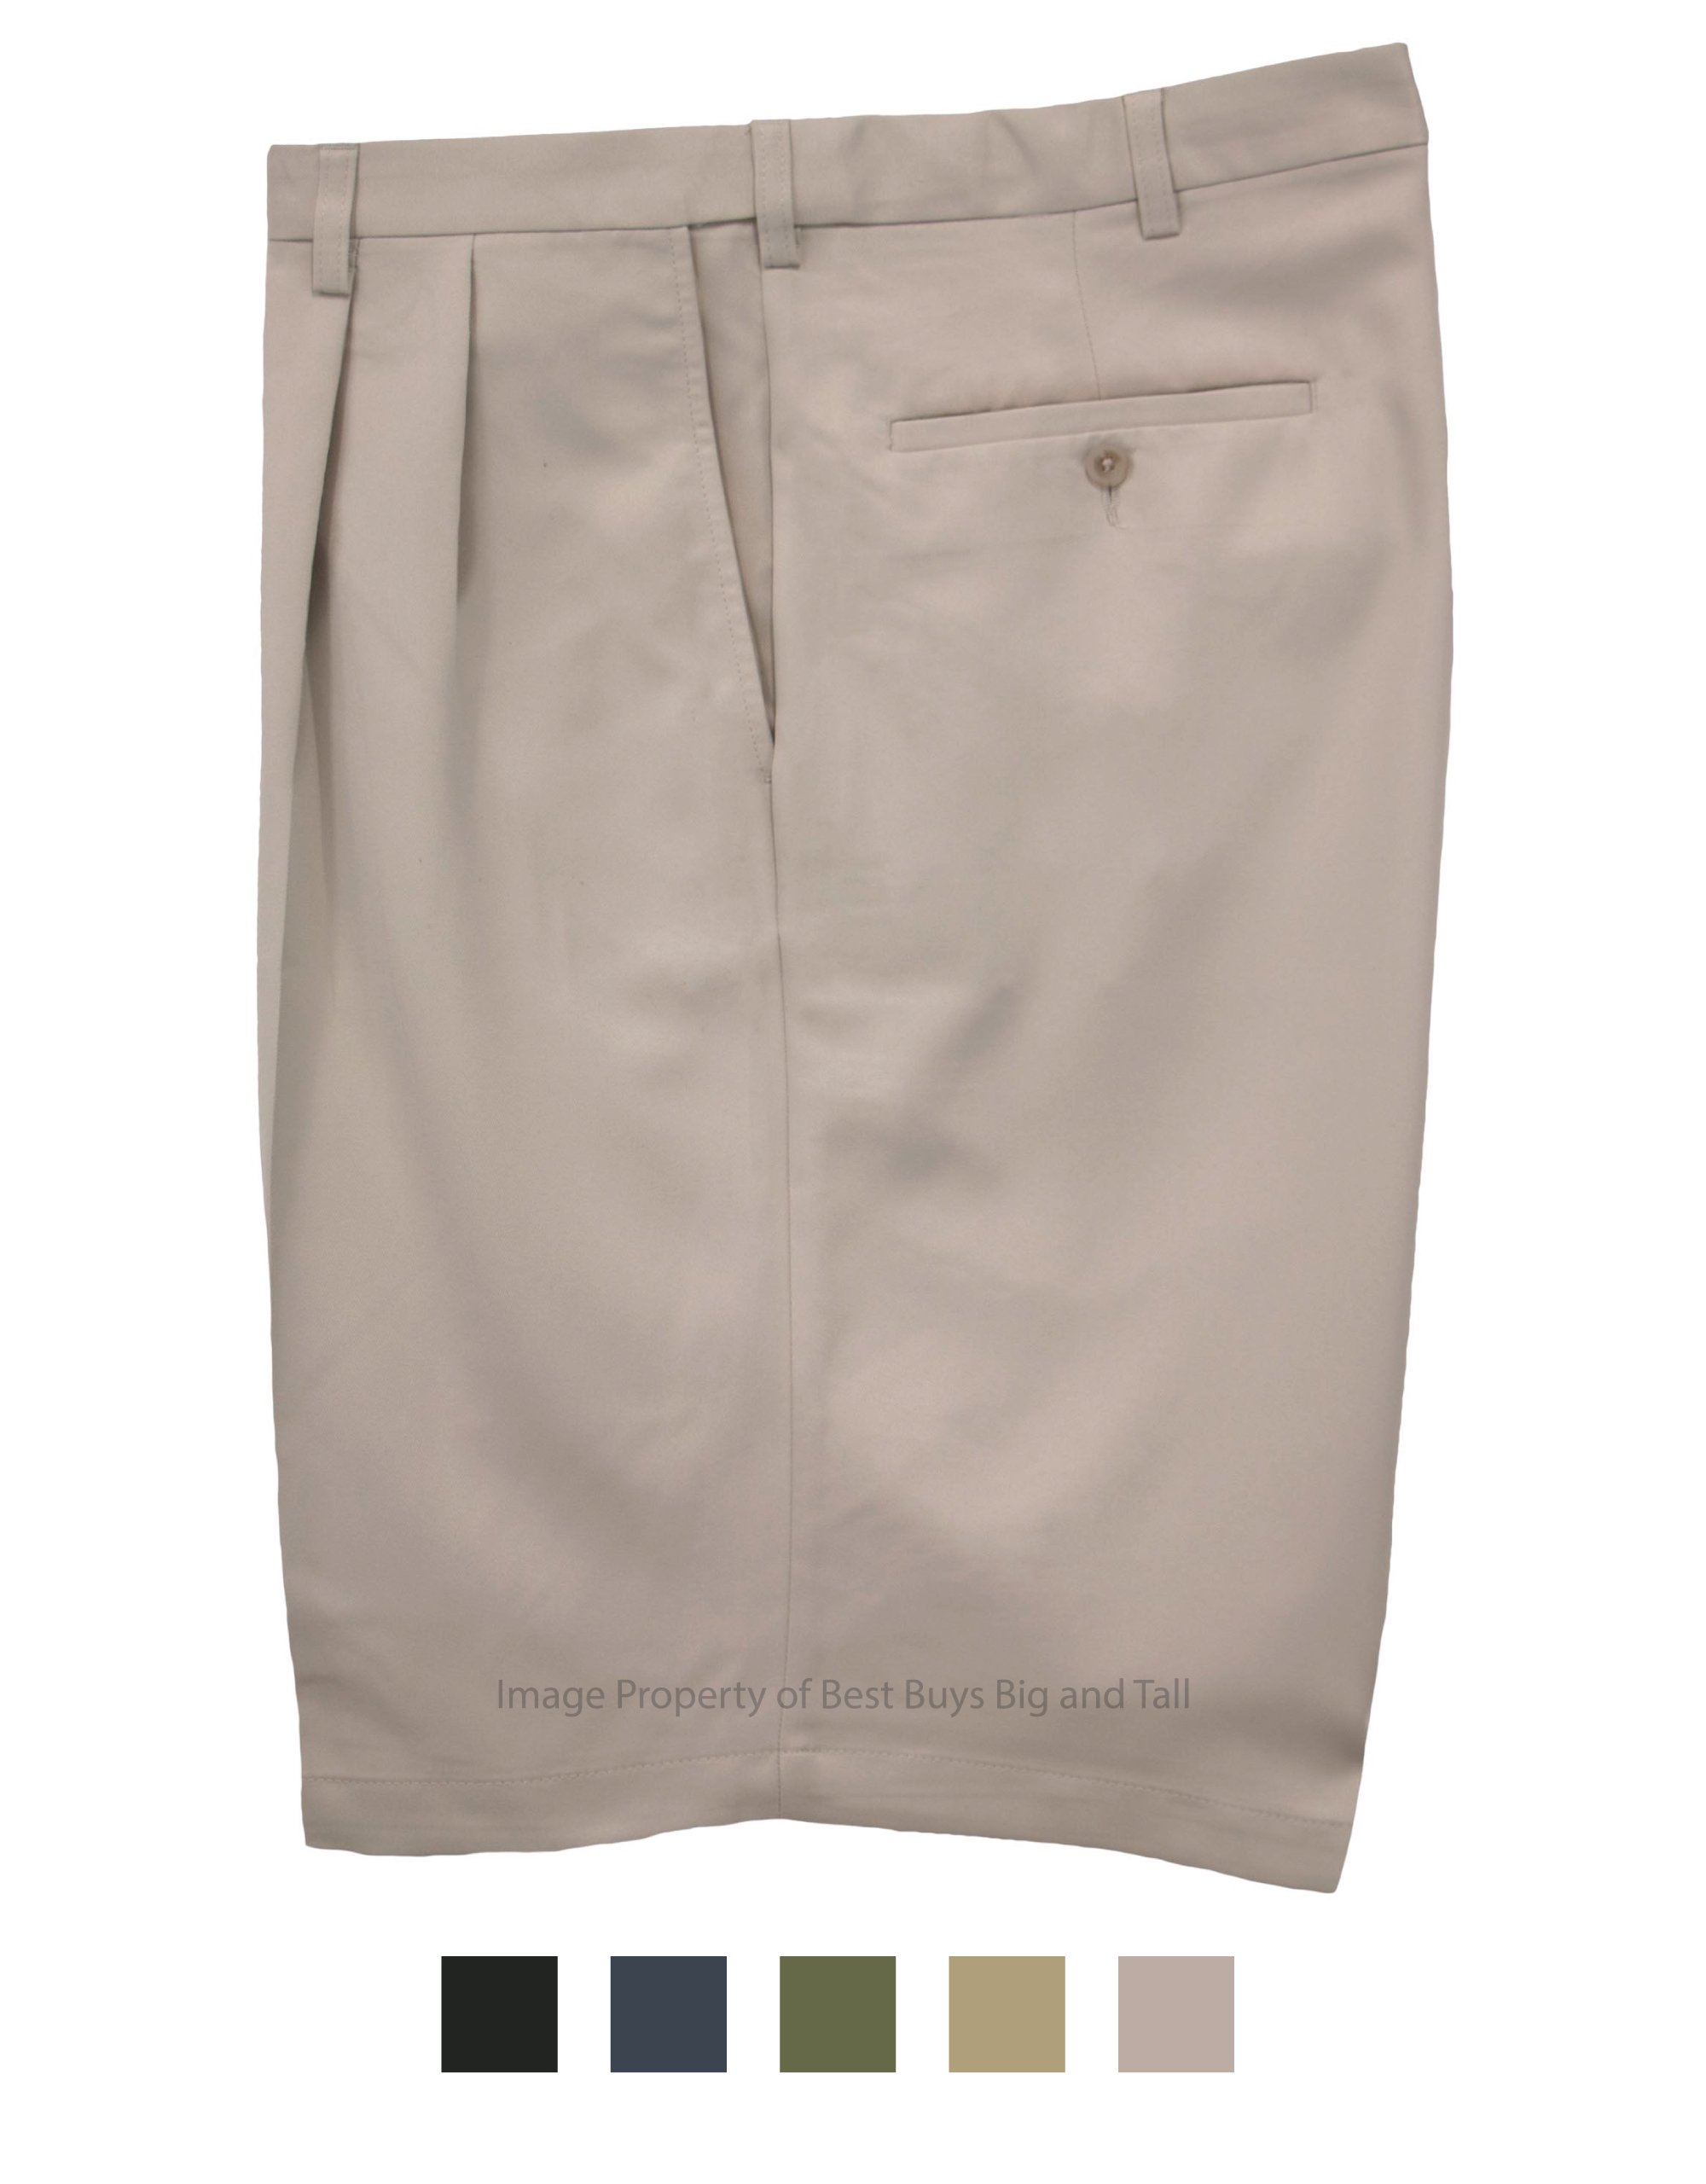 Haggar Big & Tall Men's Pleated Casual Shorts Expandable Waist Light Khaki Size 48#898C